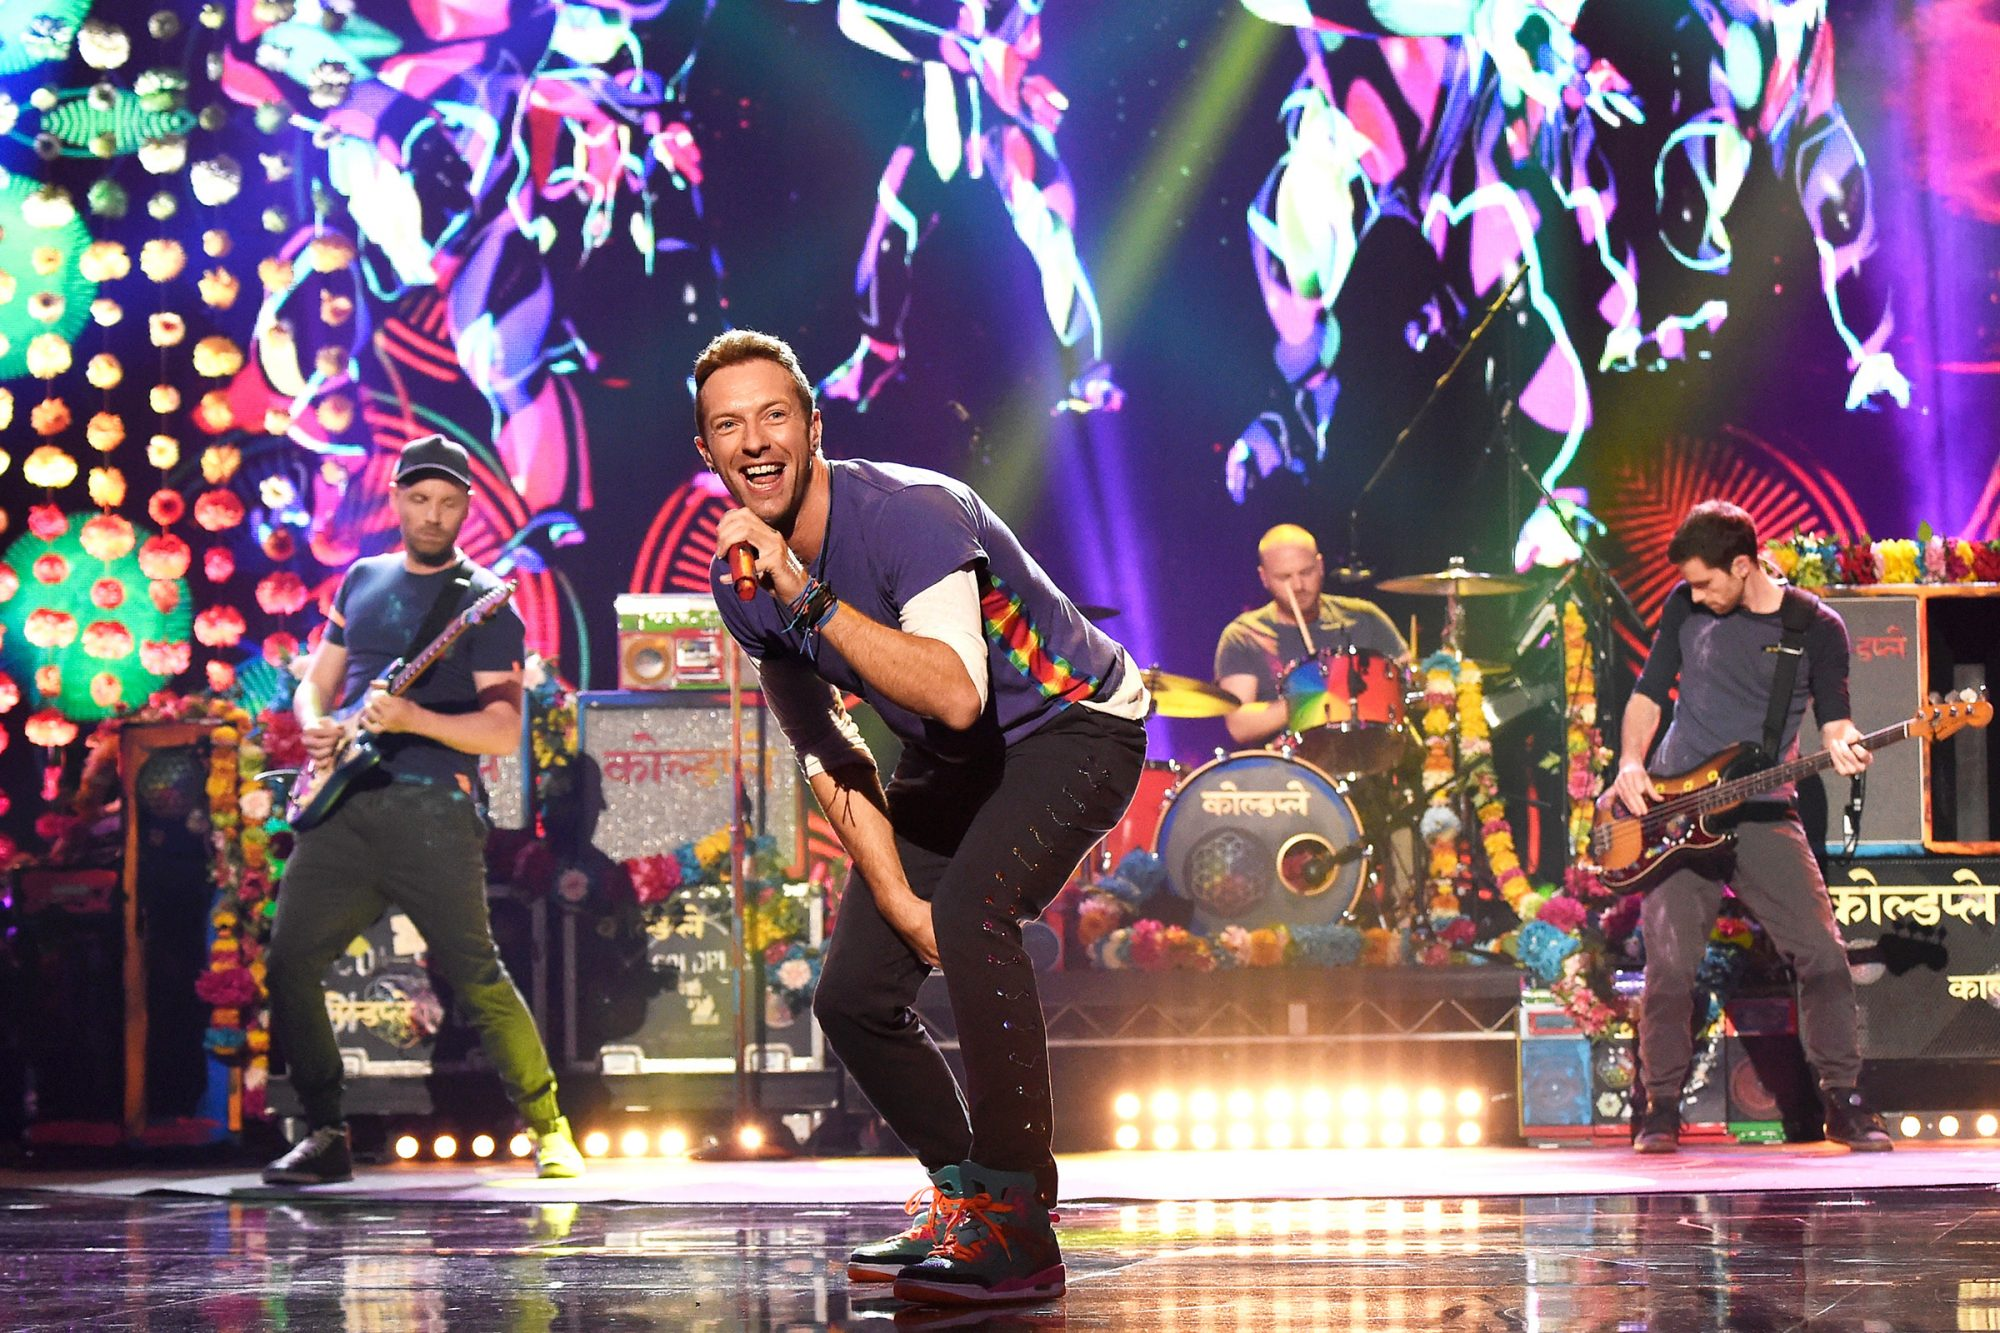 Jonny Buckland, Chris Martin, Will Champion and Guy Berryman of music group Coldplay perform onstage during the 2015 American Music Awards at Microsoft Theater on November 22, 2015 in Los Angeles, California